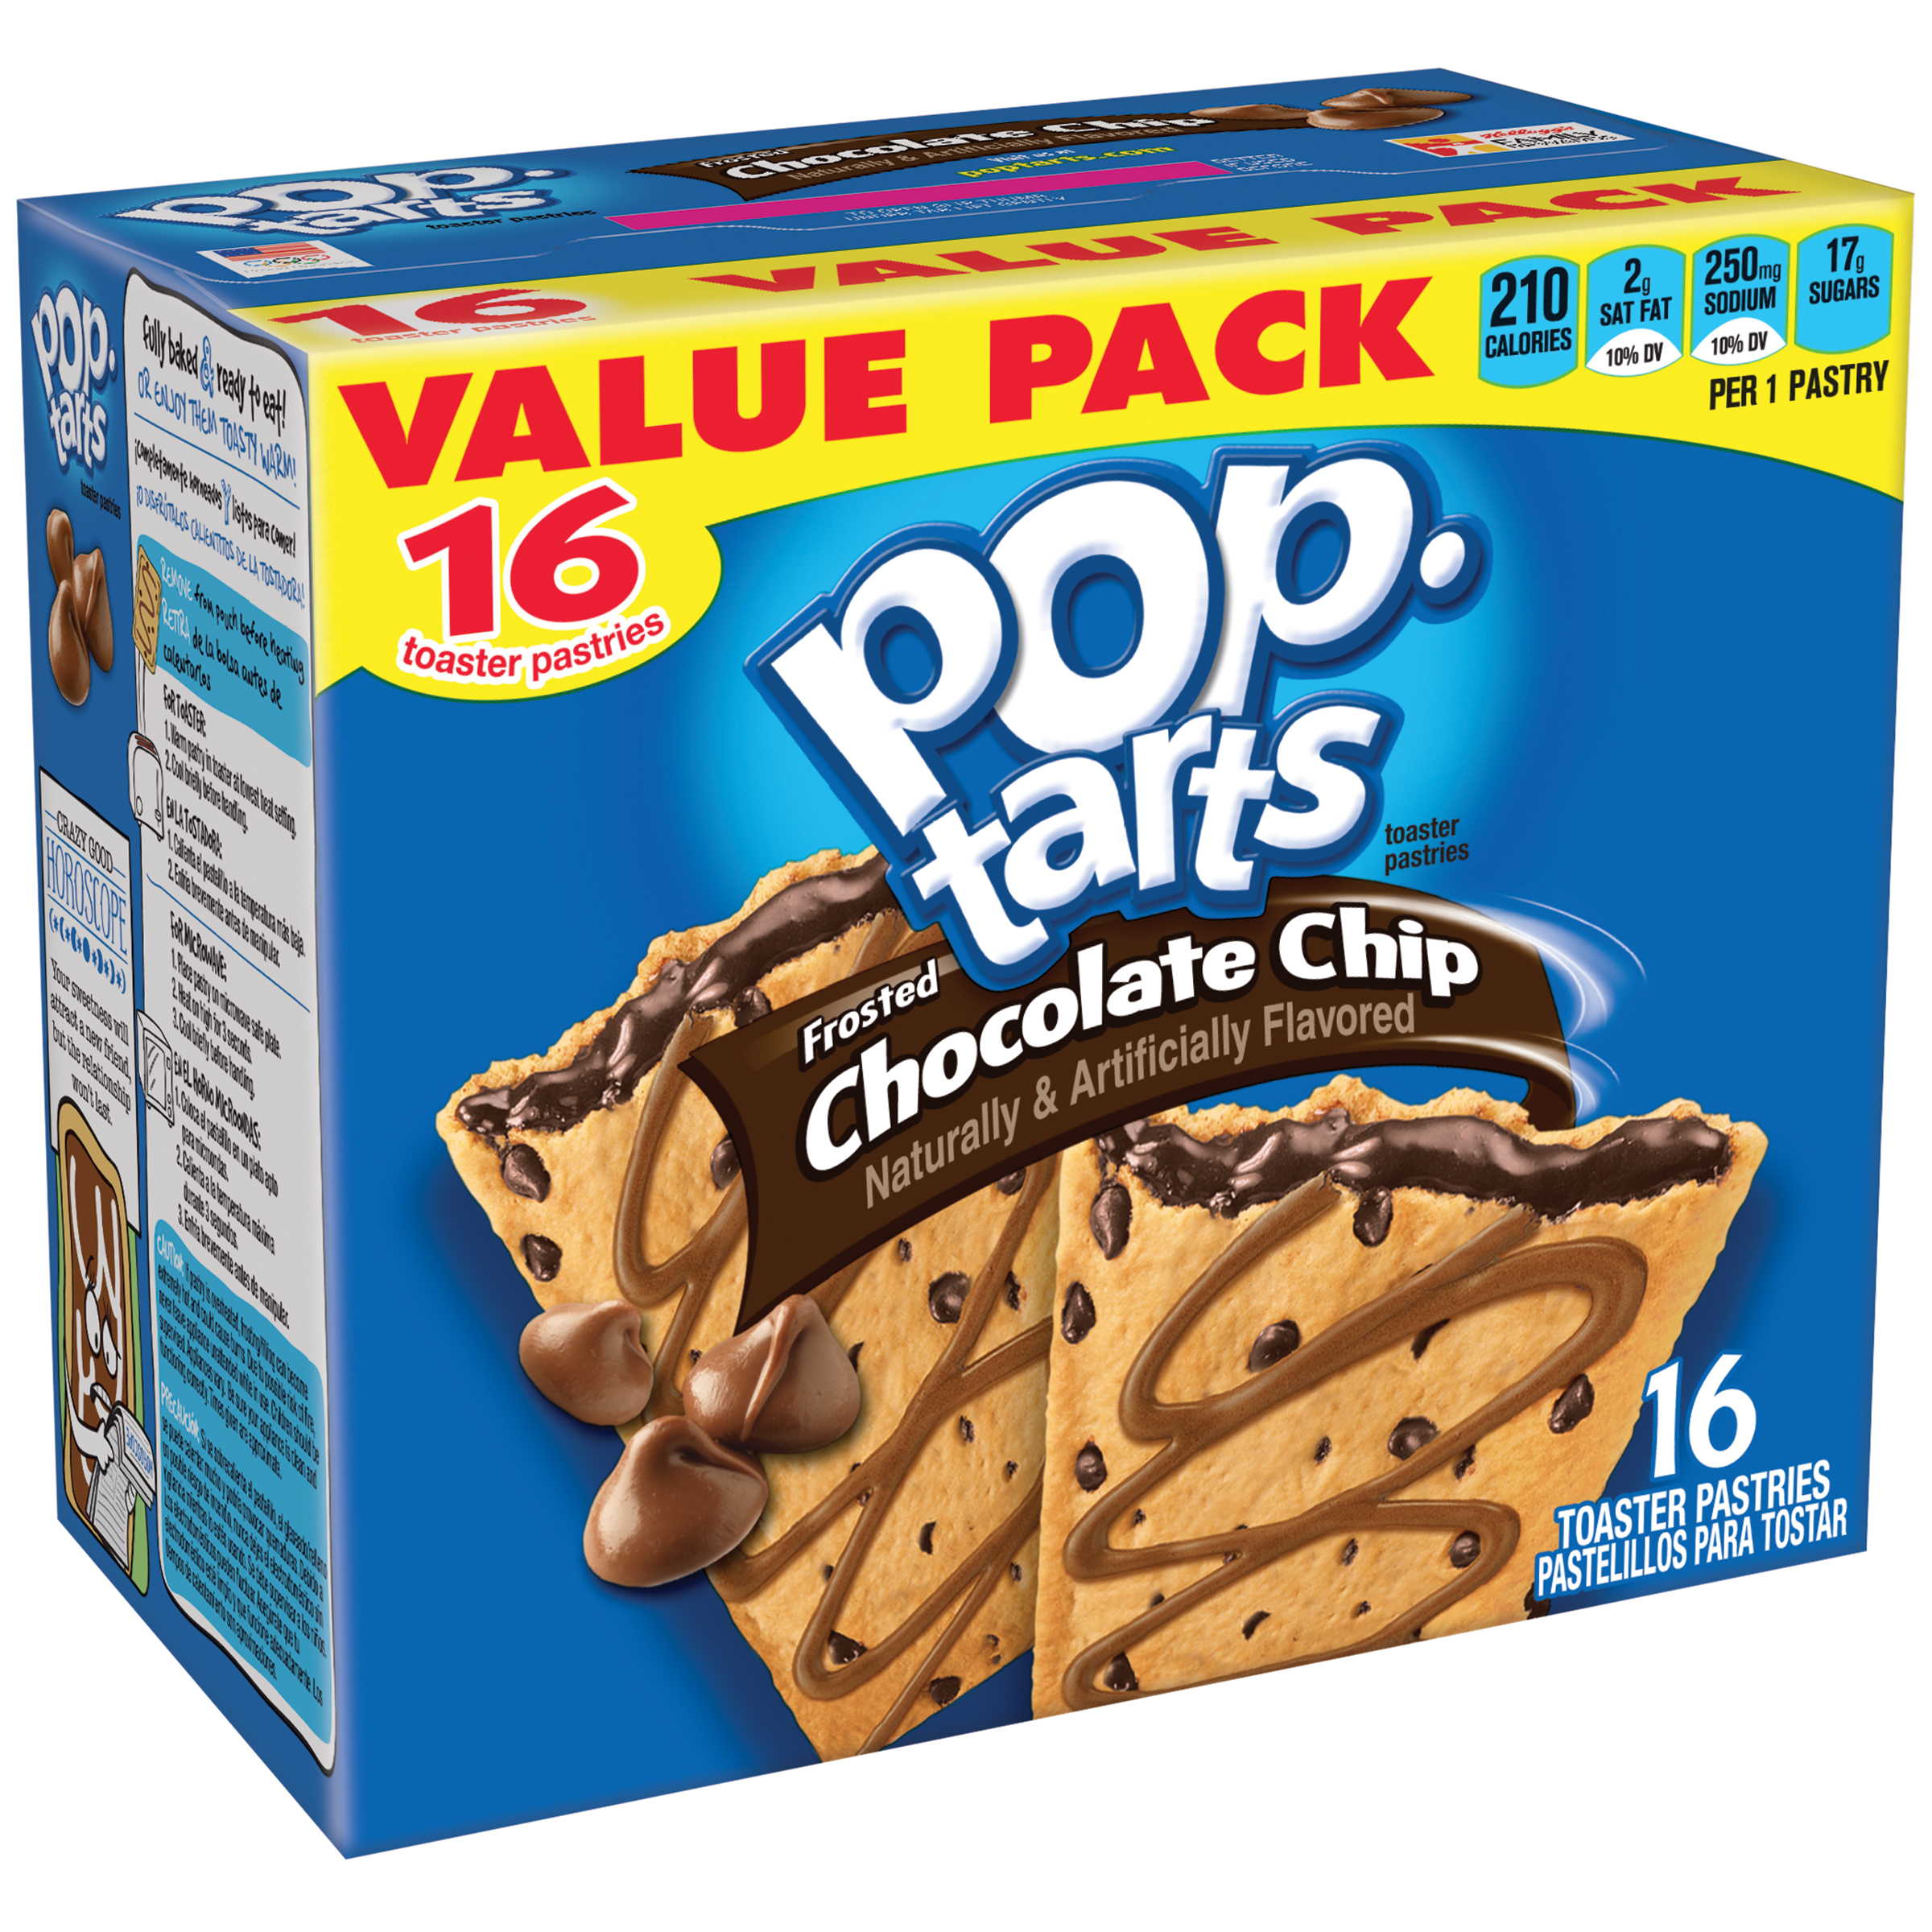 Kellogg's Pop-Tarts, Frosted Chocolate Chip Flavored, 29.3 oz 16 Ct